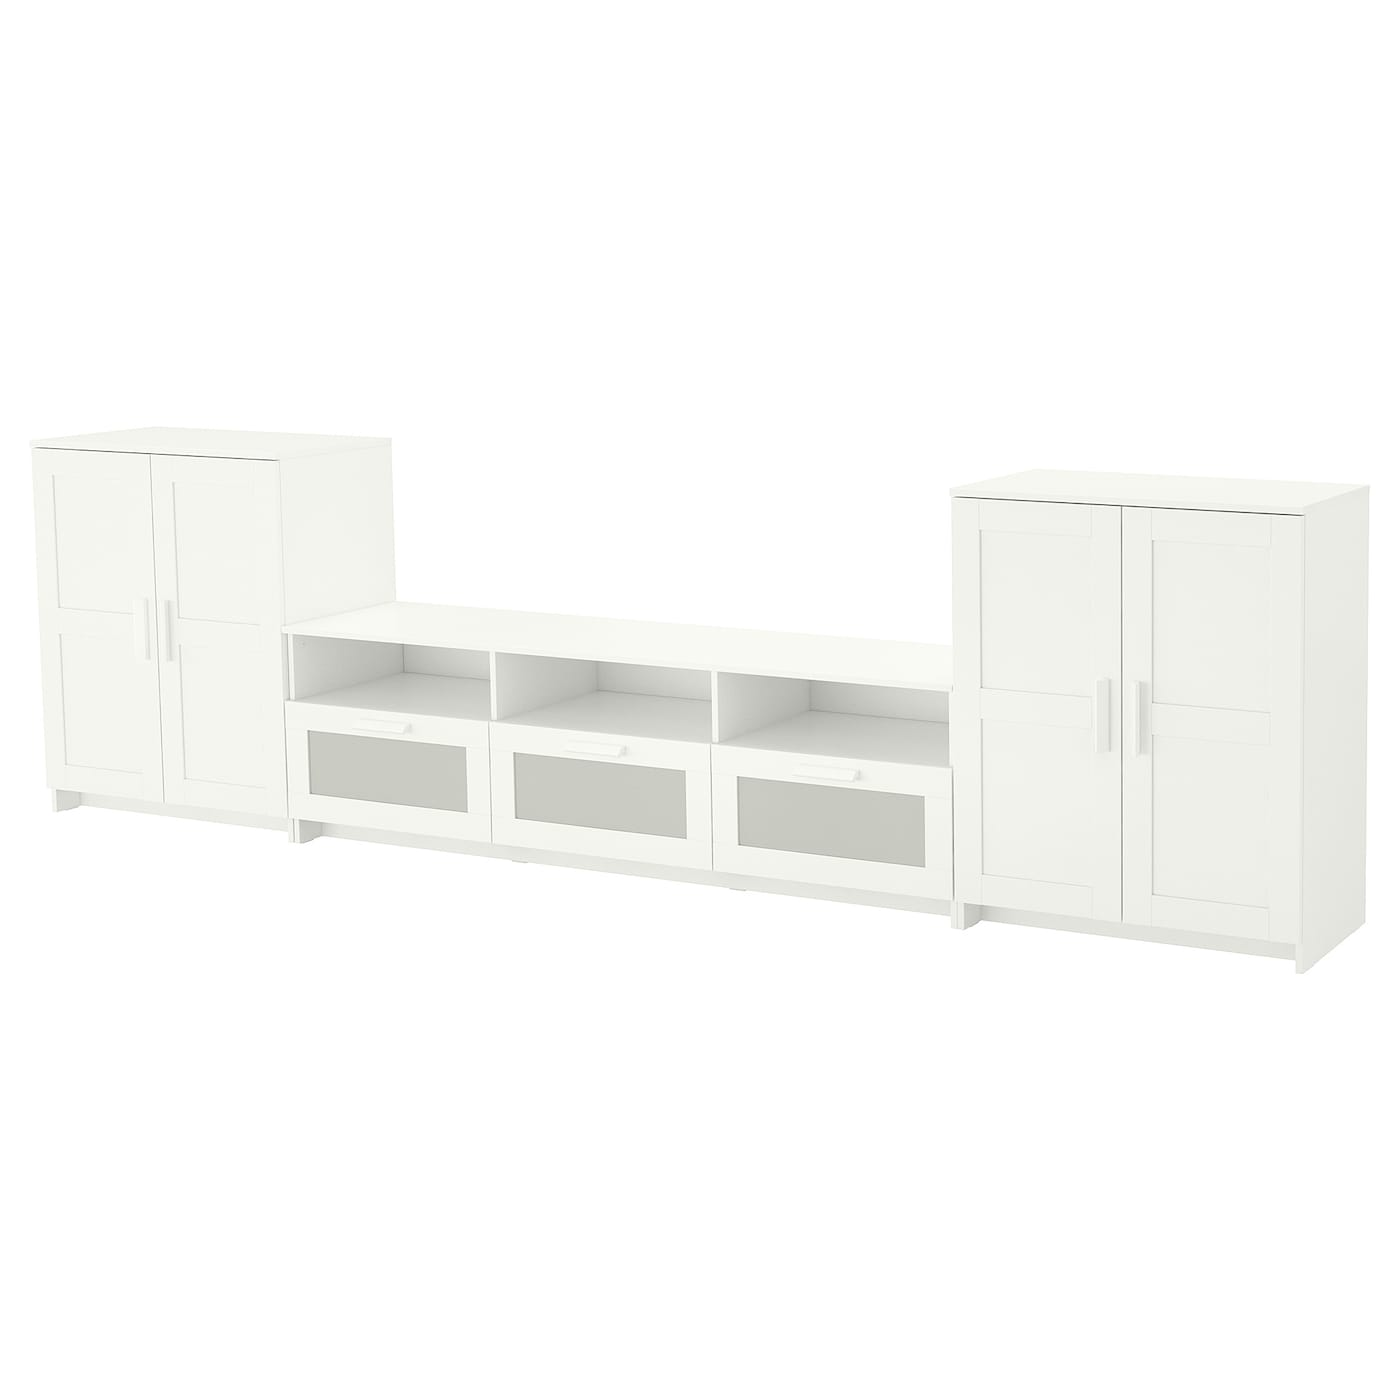 IKEA BRIMNES TV storage combination Adjustable shelves, so you can customise your storage as needed.